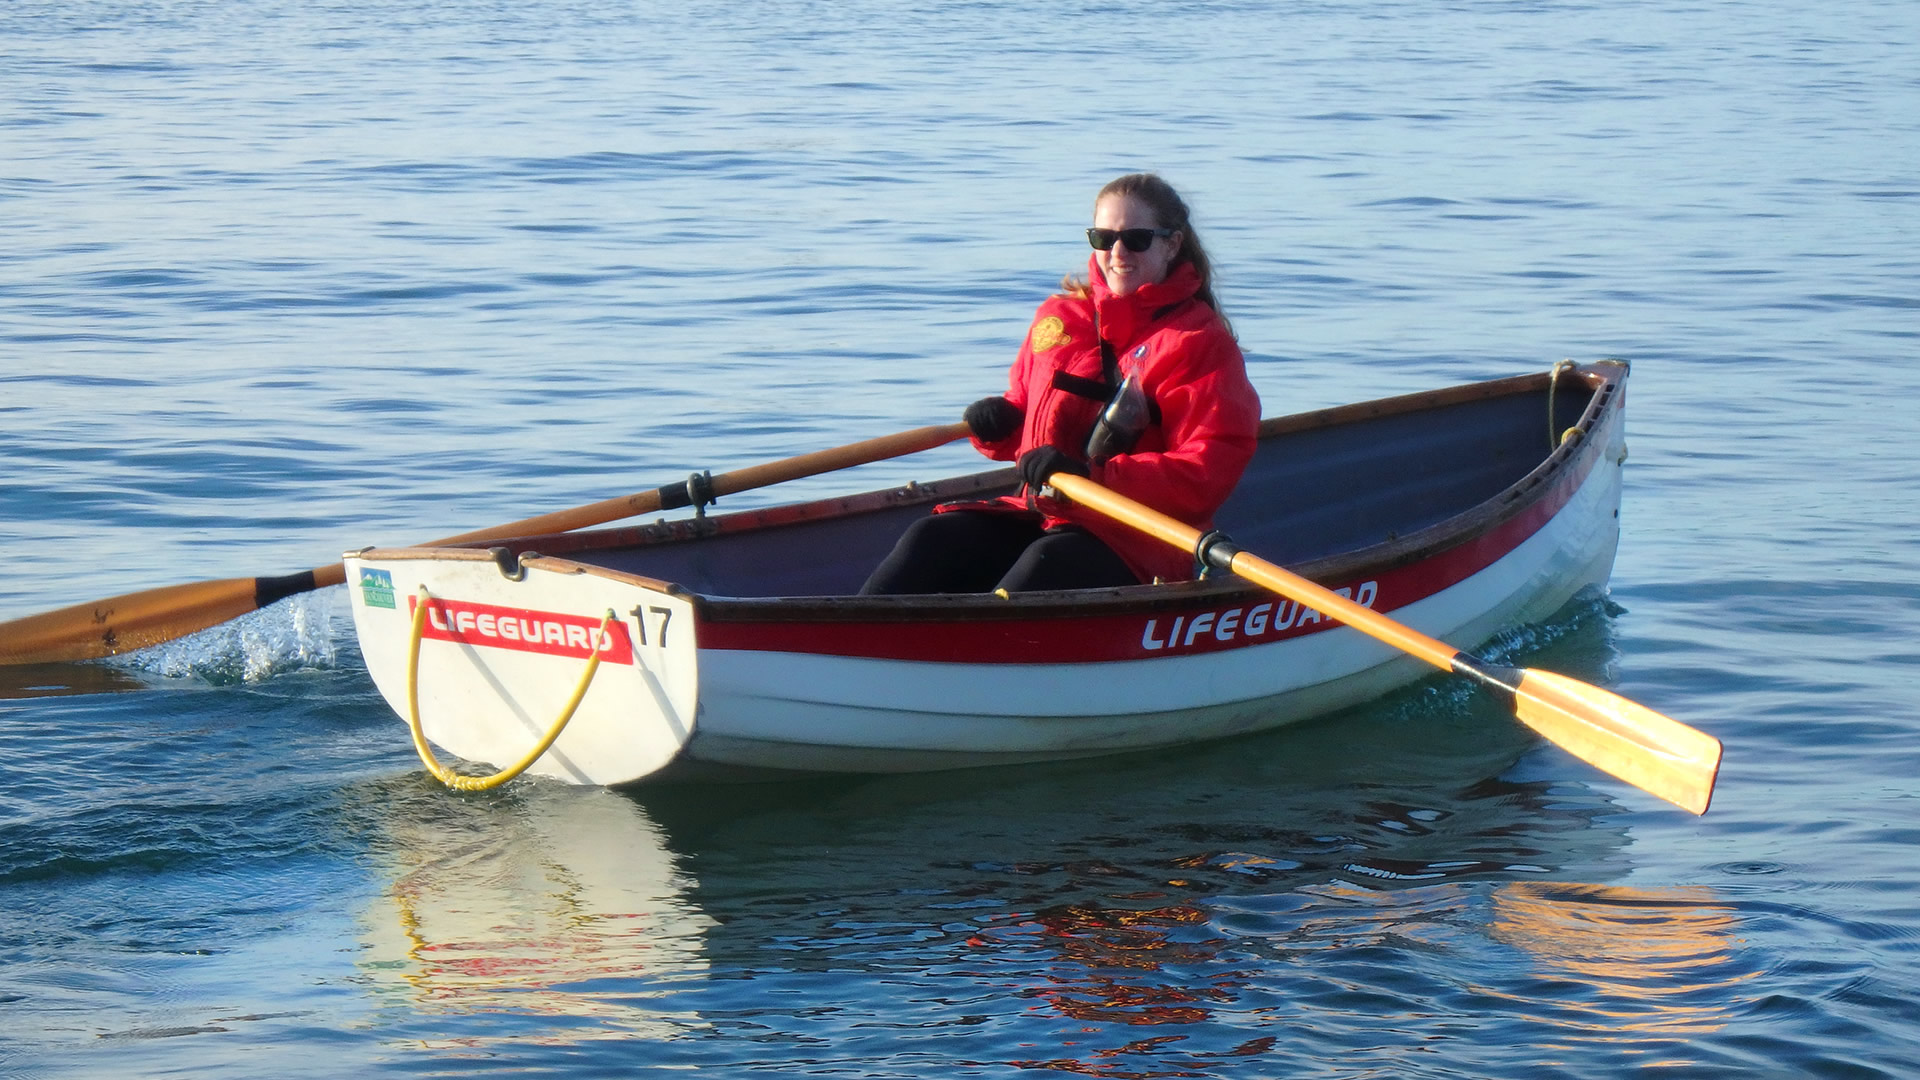 Westcoast-Lifeguard-Rowboat-credit-City-of-Vancouver-Whitehall-Rowing-and-Sail-4a